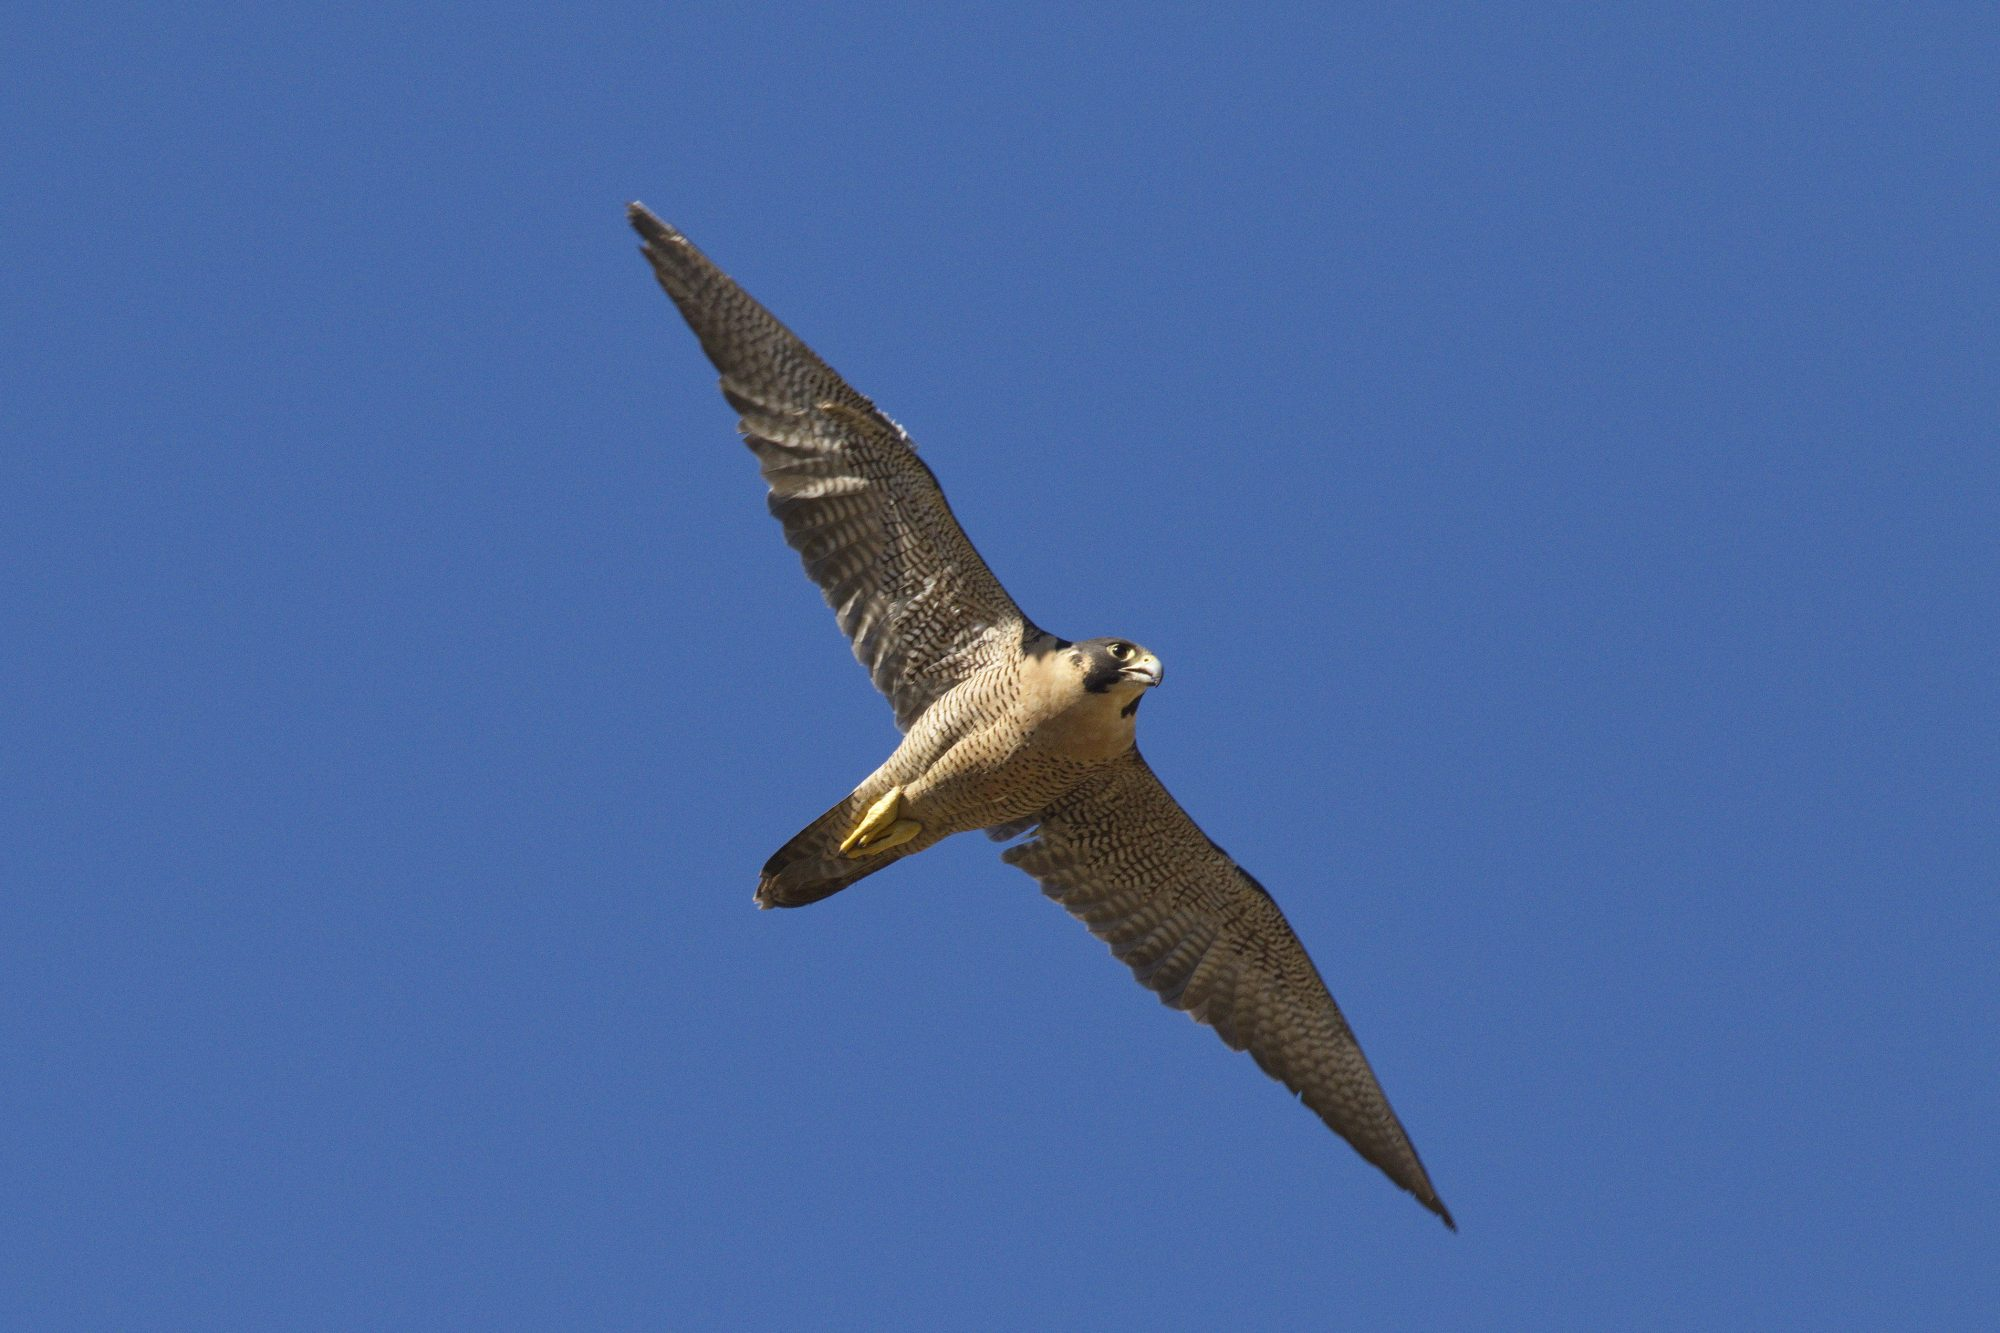 Peregrine Falcon Adult in Flight photo by (c) Stephen H. Vaughan